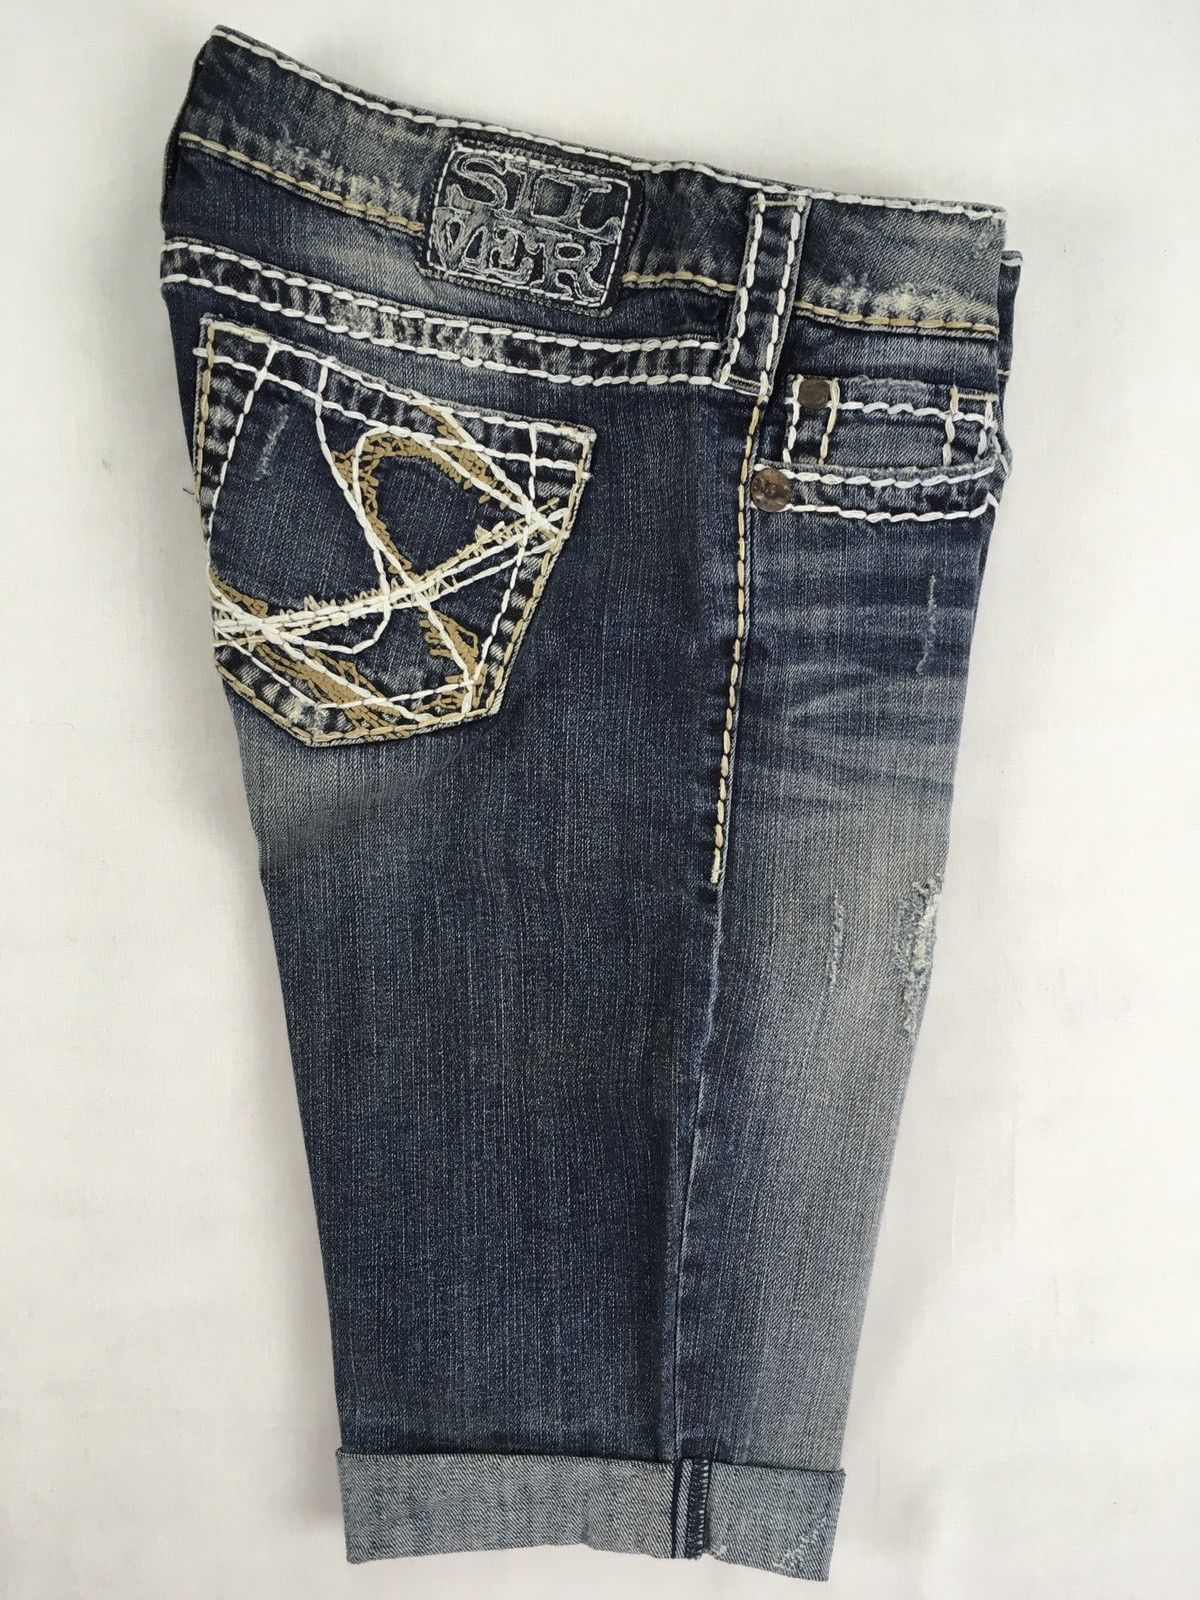 SILVER JEANS SALE Buckle Super Low Thick Stitch Tuesday Denim Jean Shorts 29